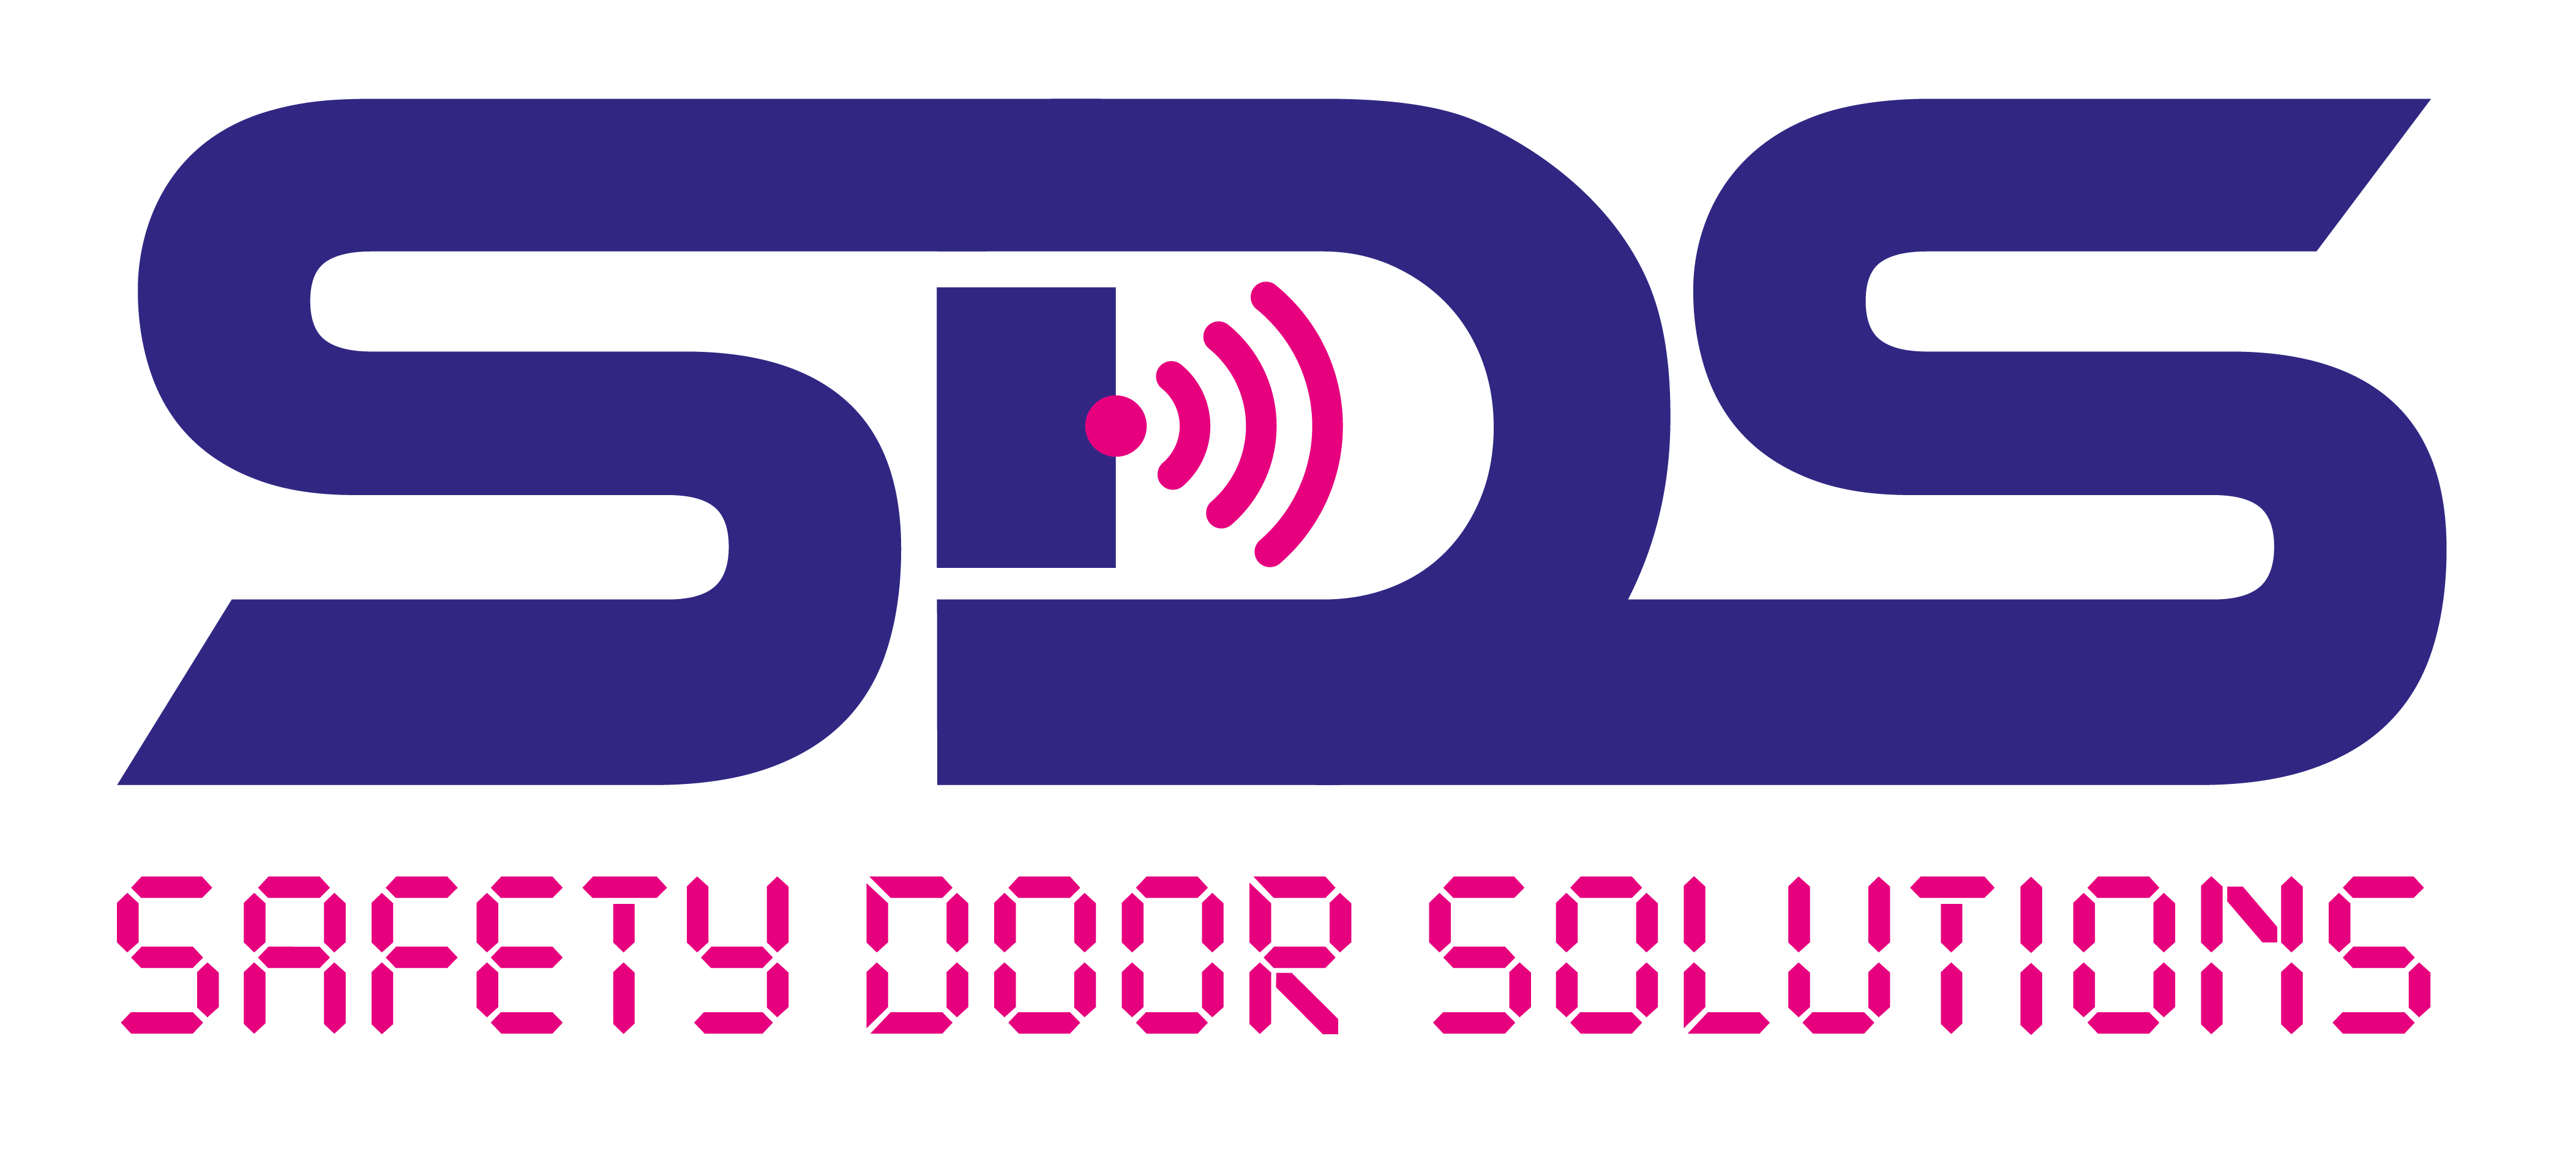 Safety Door Solutions Benelux